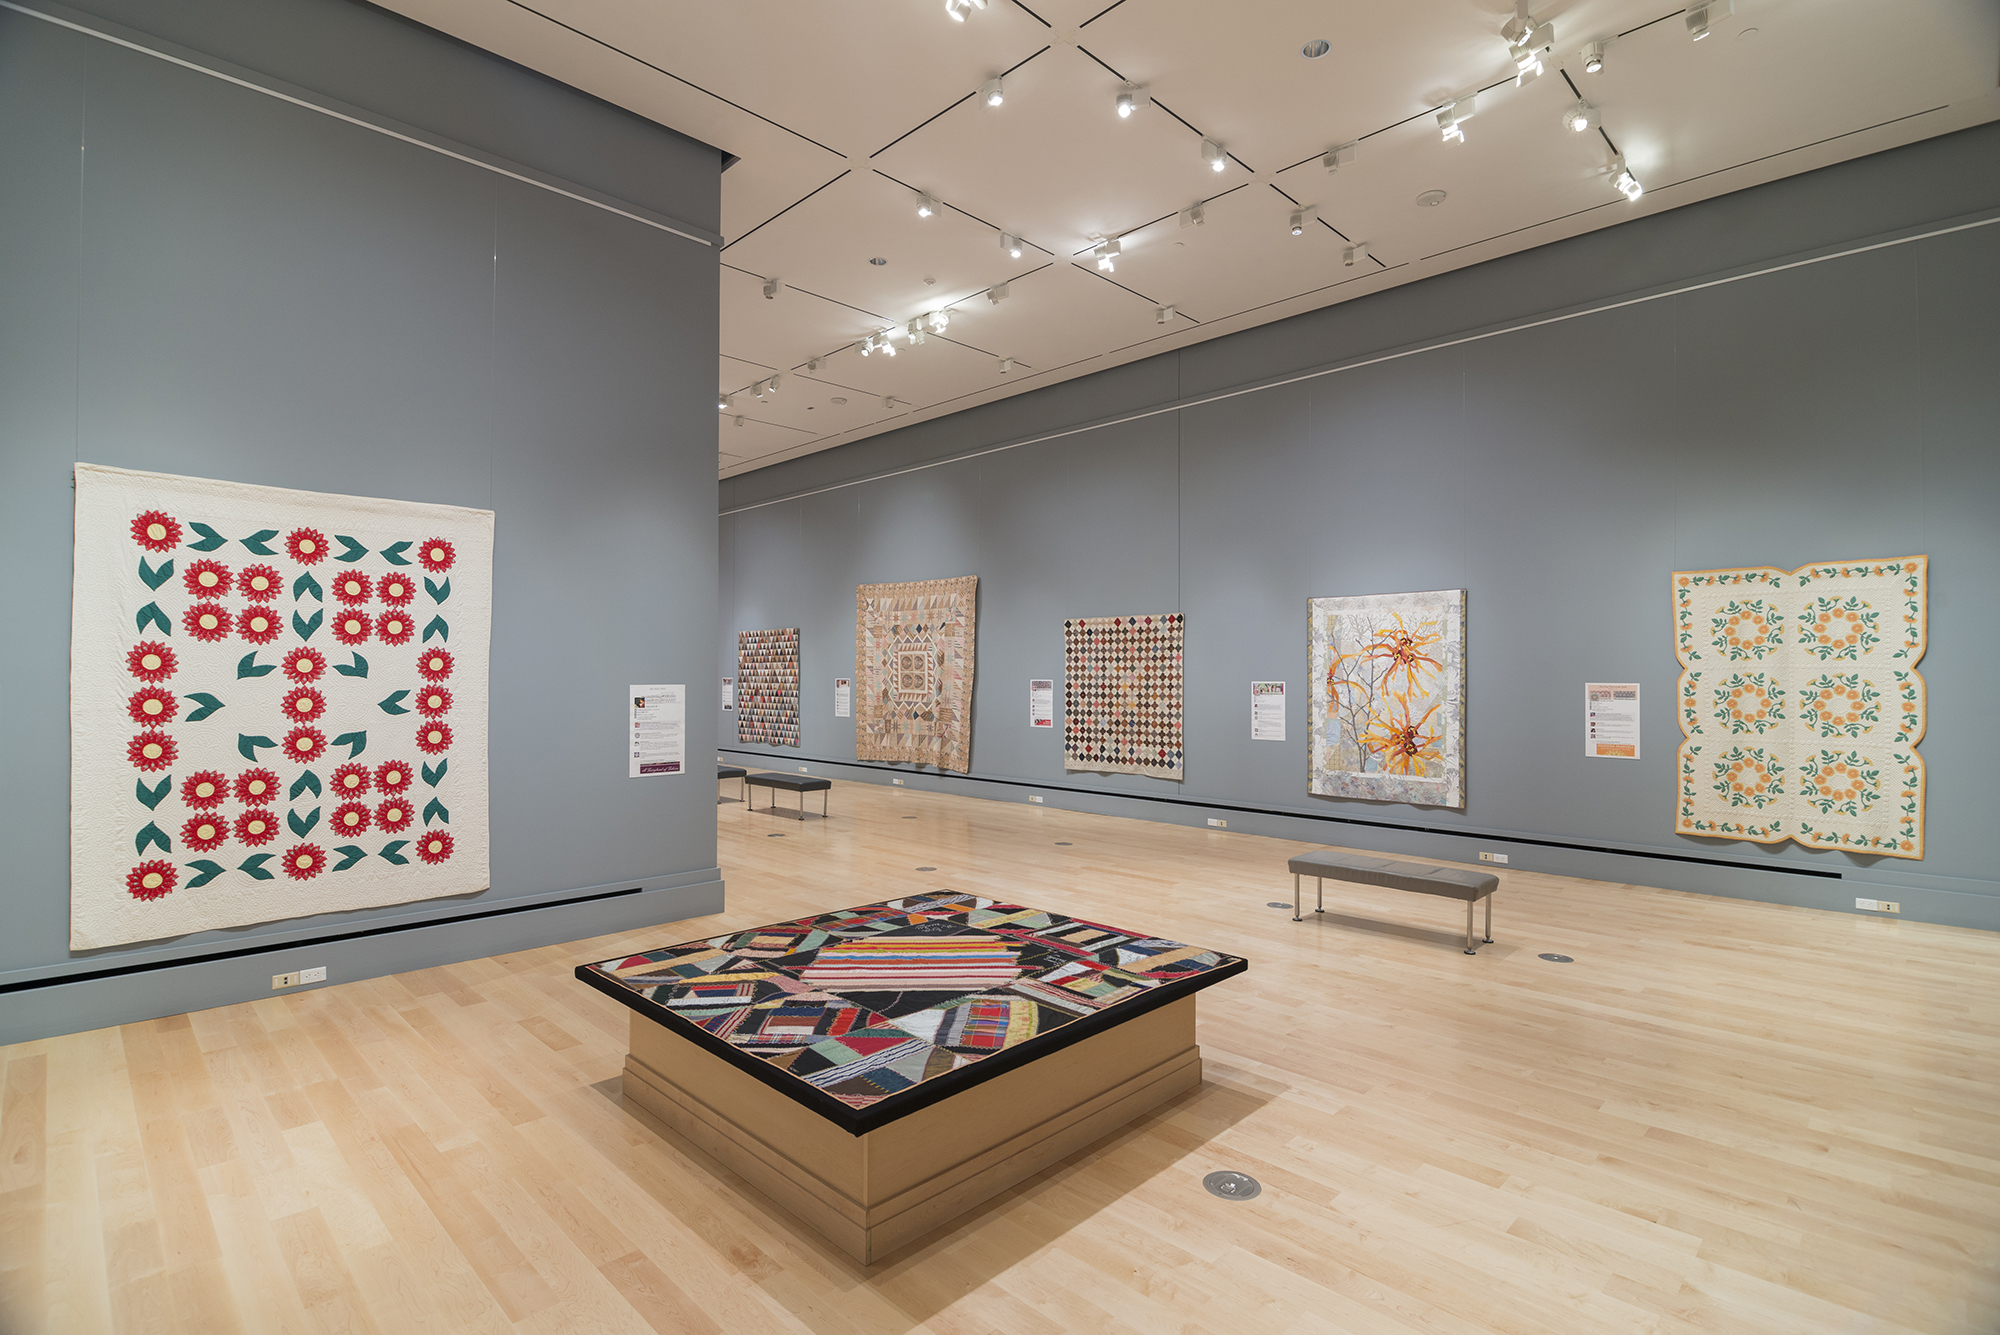 Interior Photo of Quilt Exhibitions